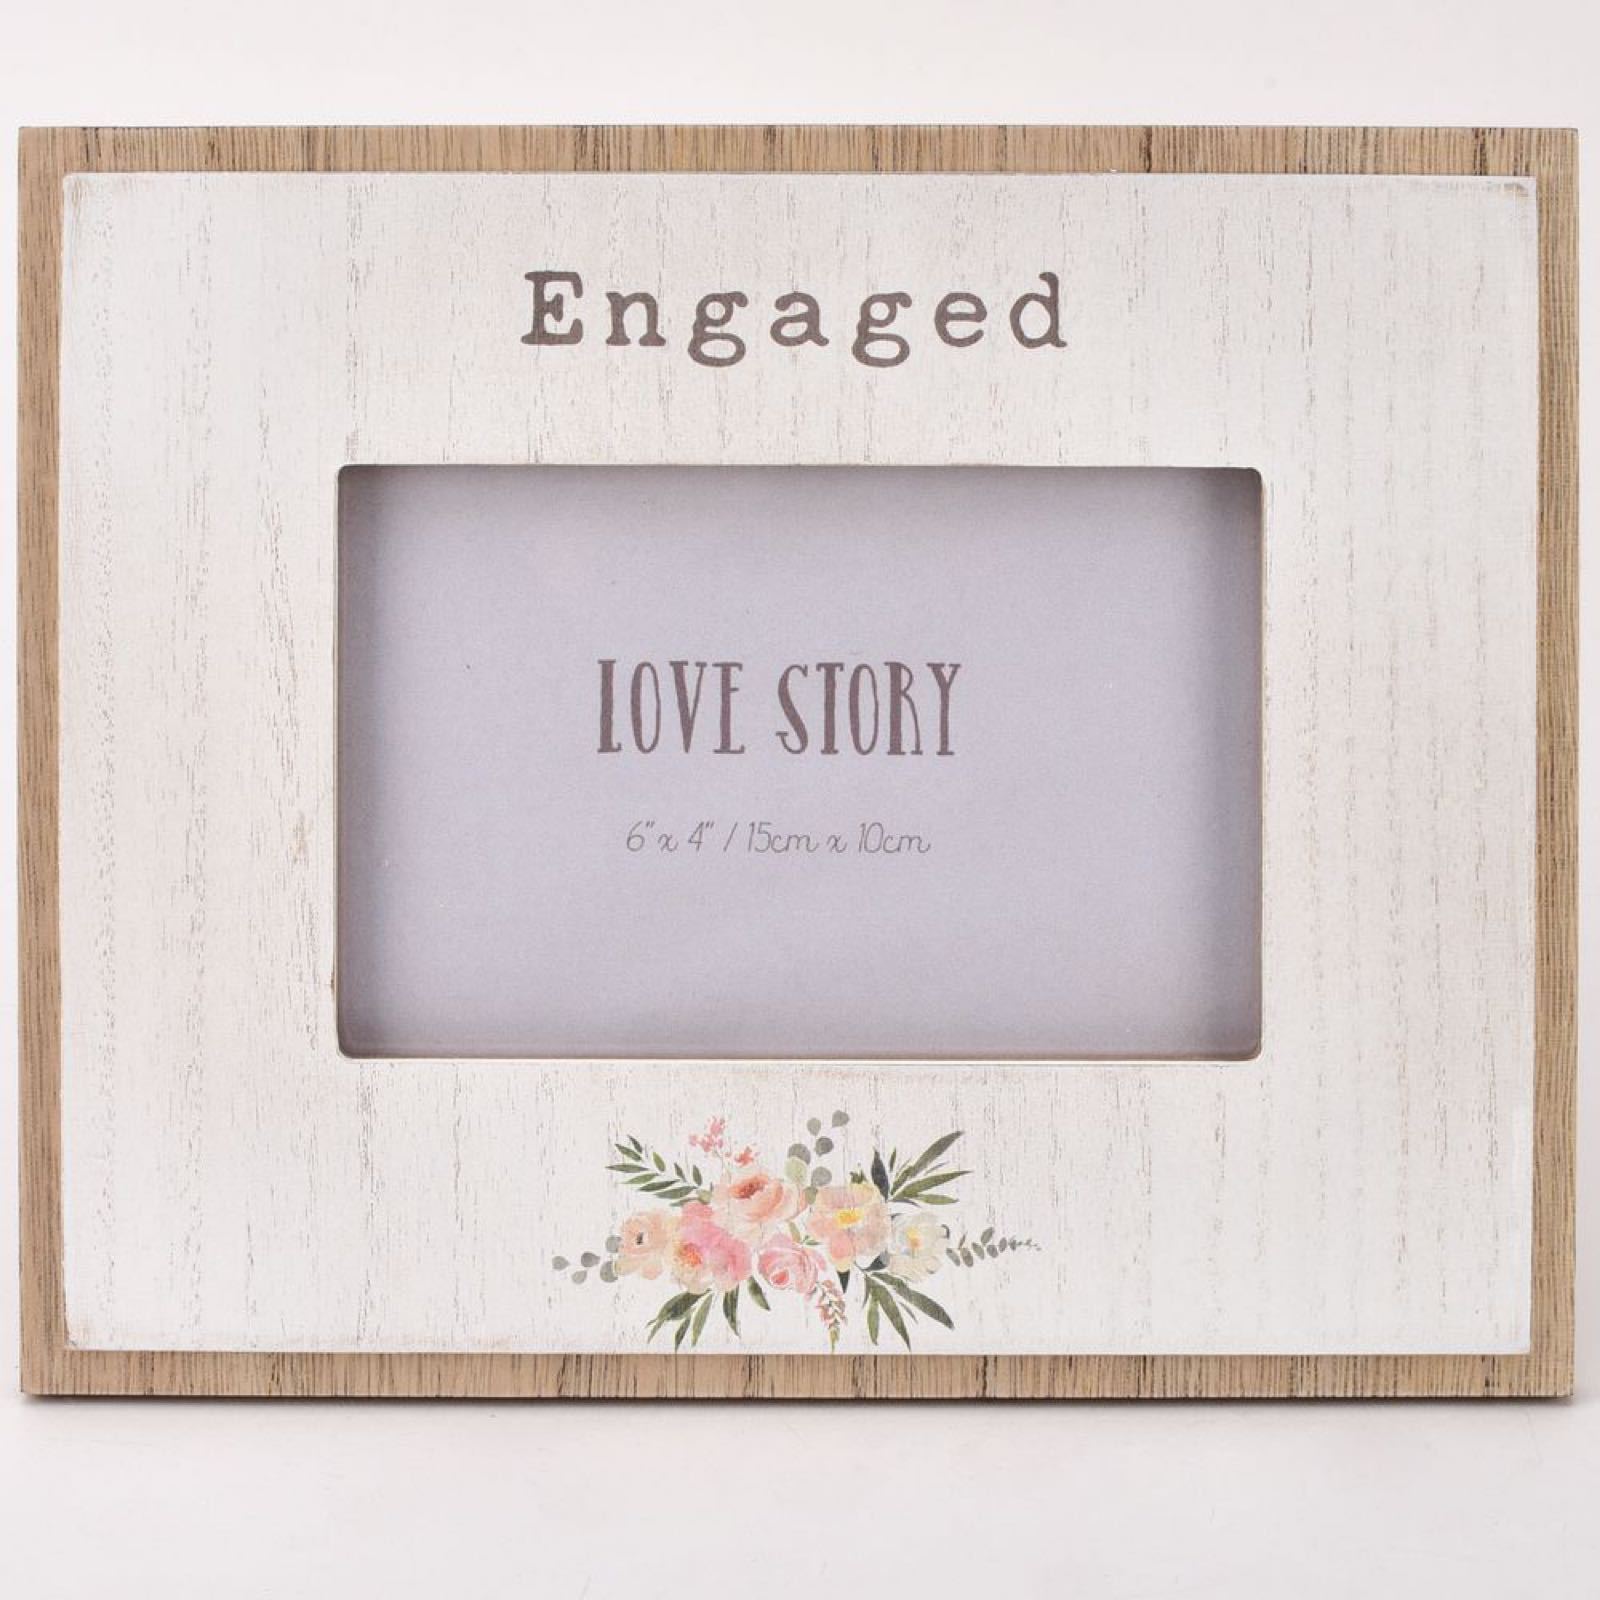 "Engaged 6""x4"" Photo Frame"